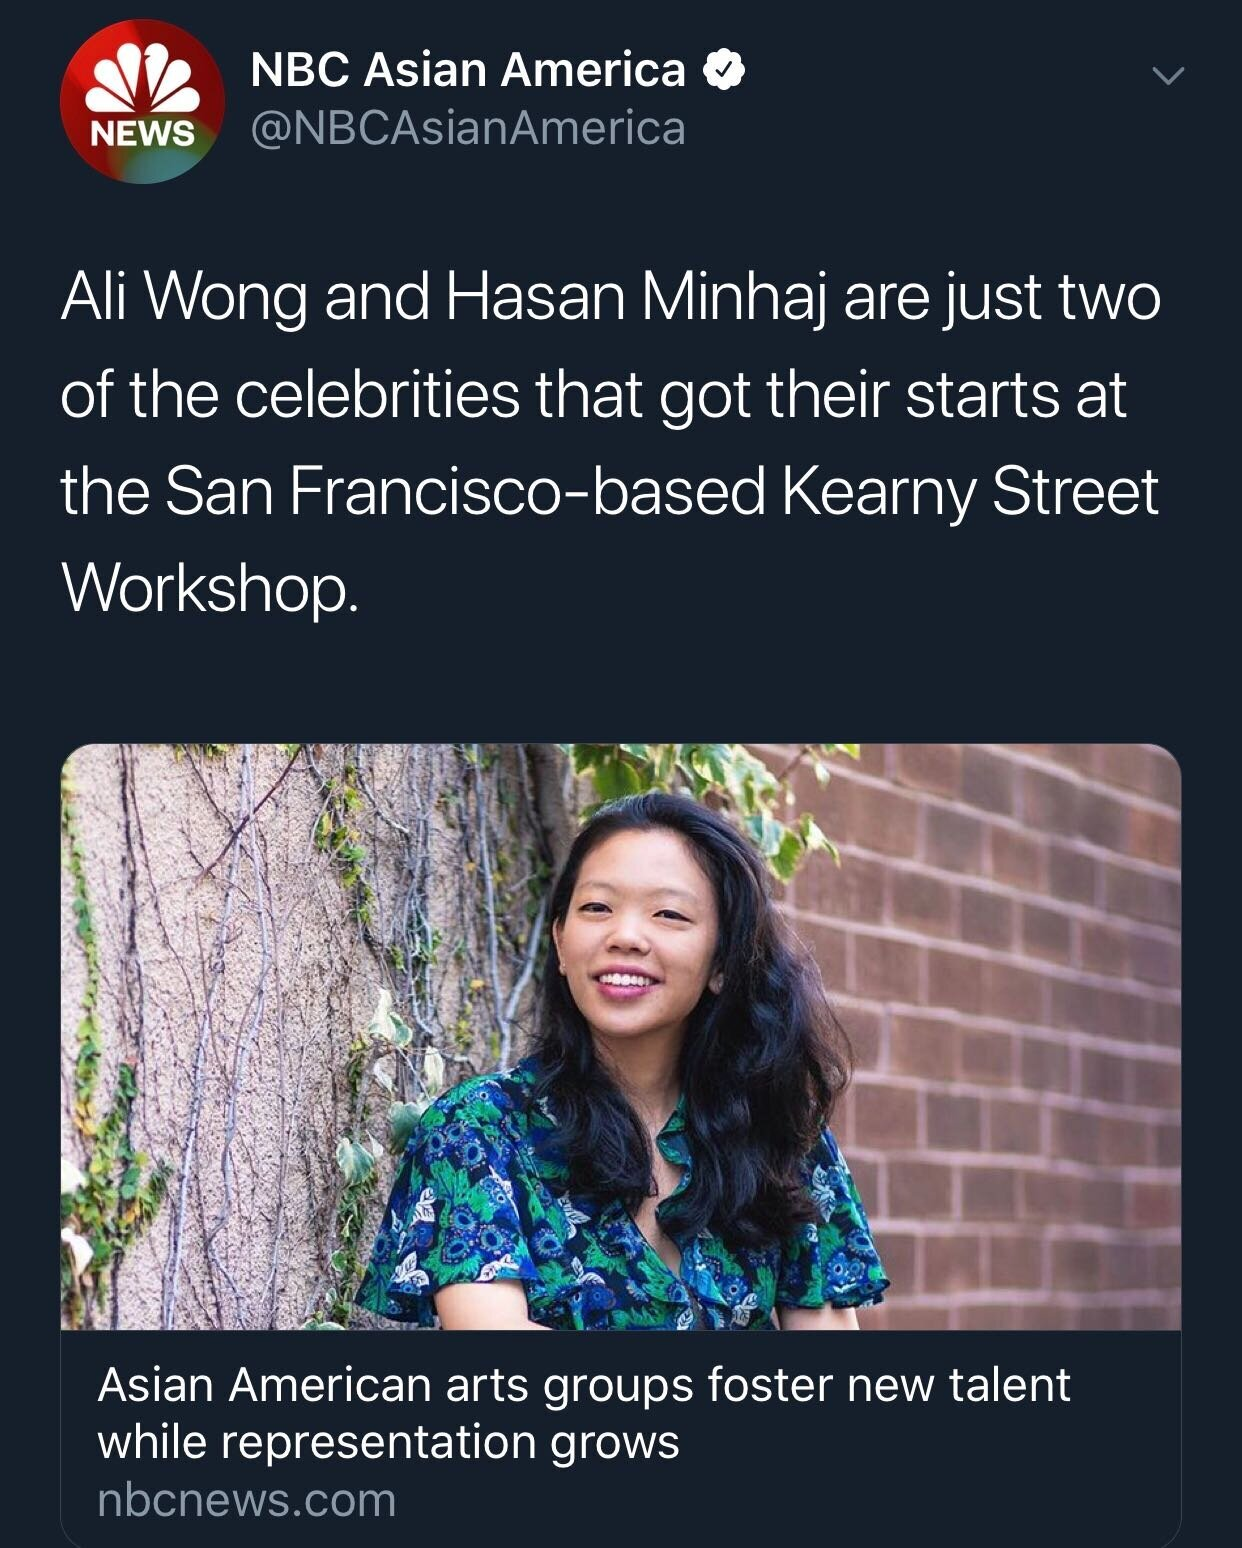 Filmmaker Alle Hsu, who is a featured artist at this year's APAture festival, said she became involved with Asian American arts organizations when she was in college.